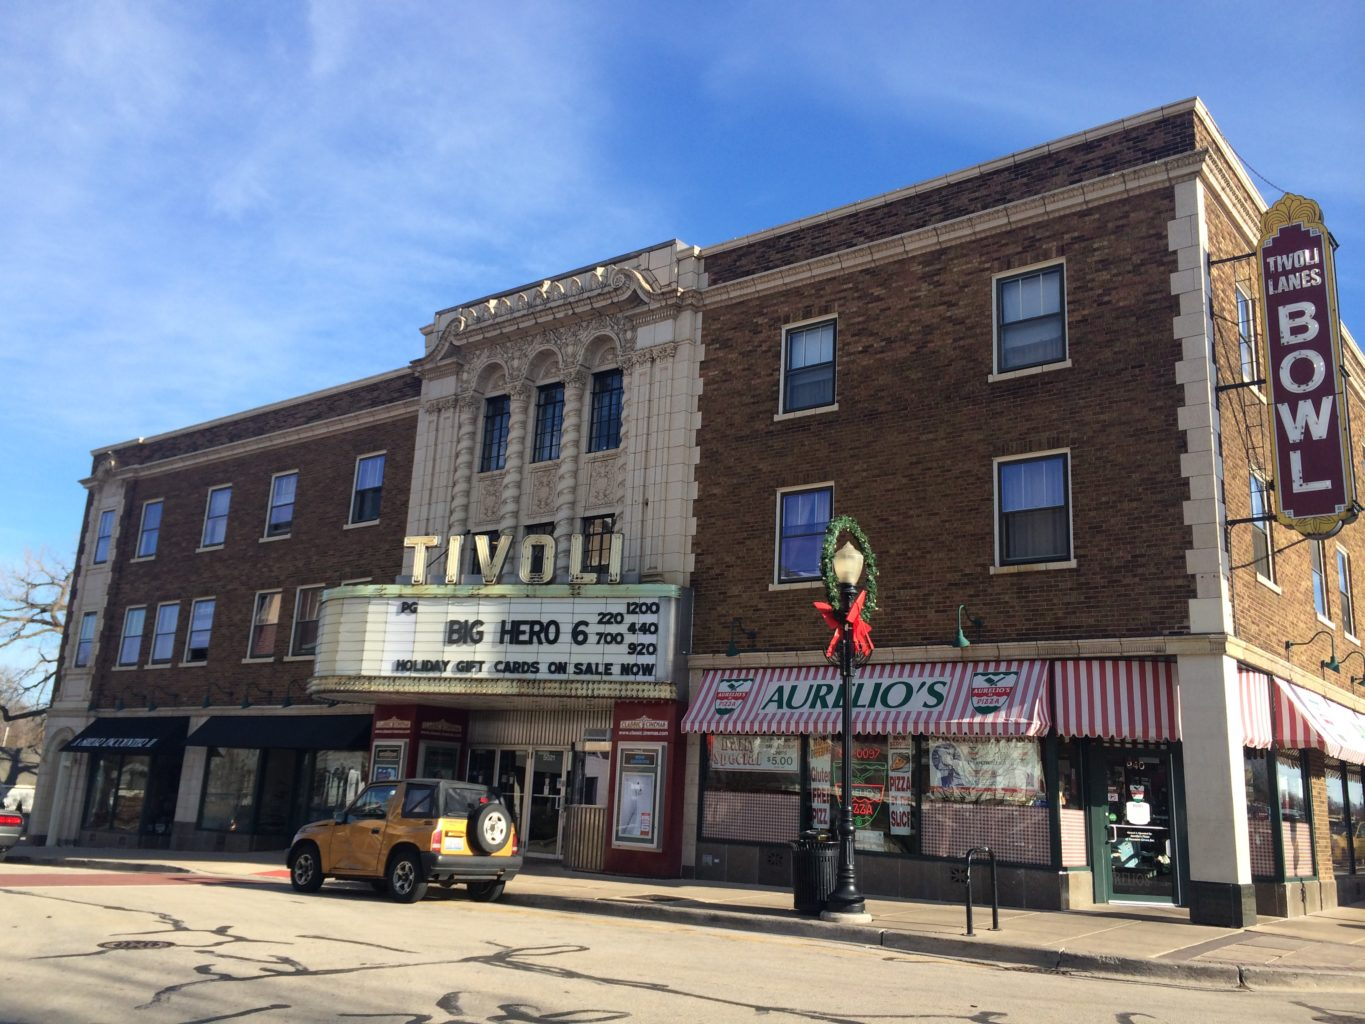 Tivoli Theatre In Downers Grove Il Great Theaters Of America Original History Travel Tv Series